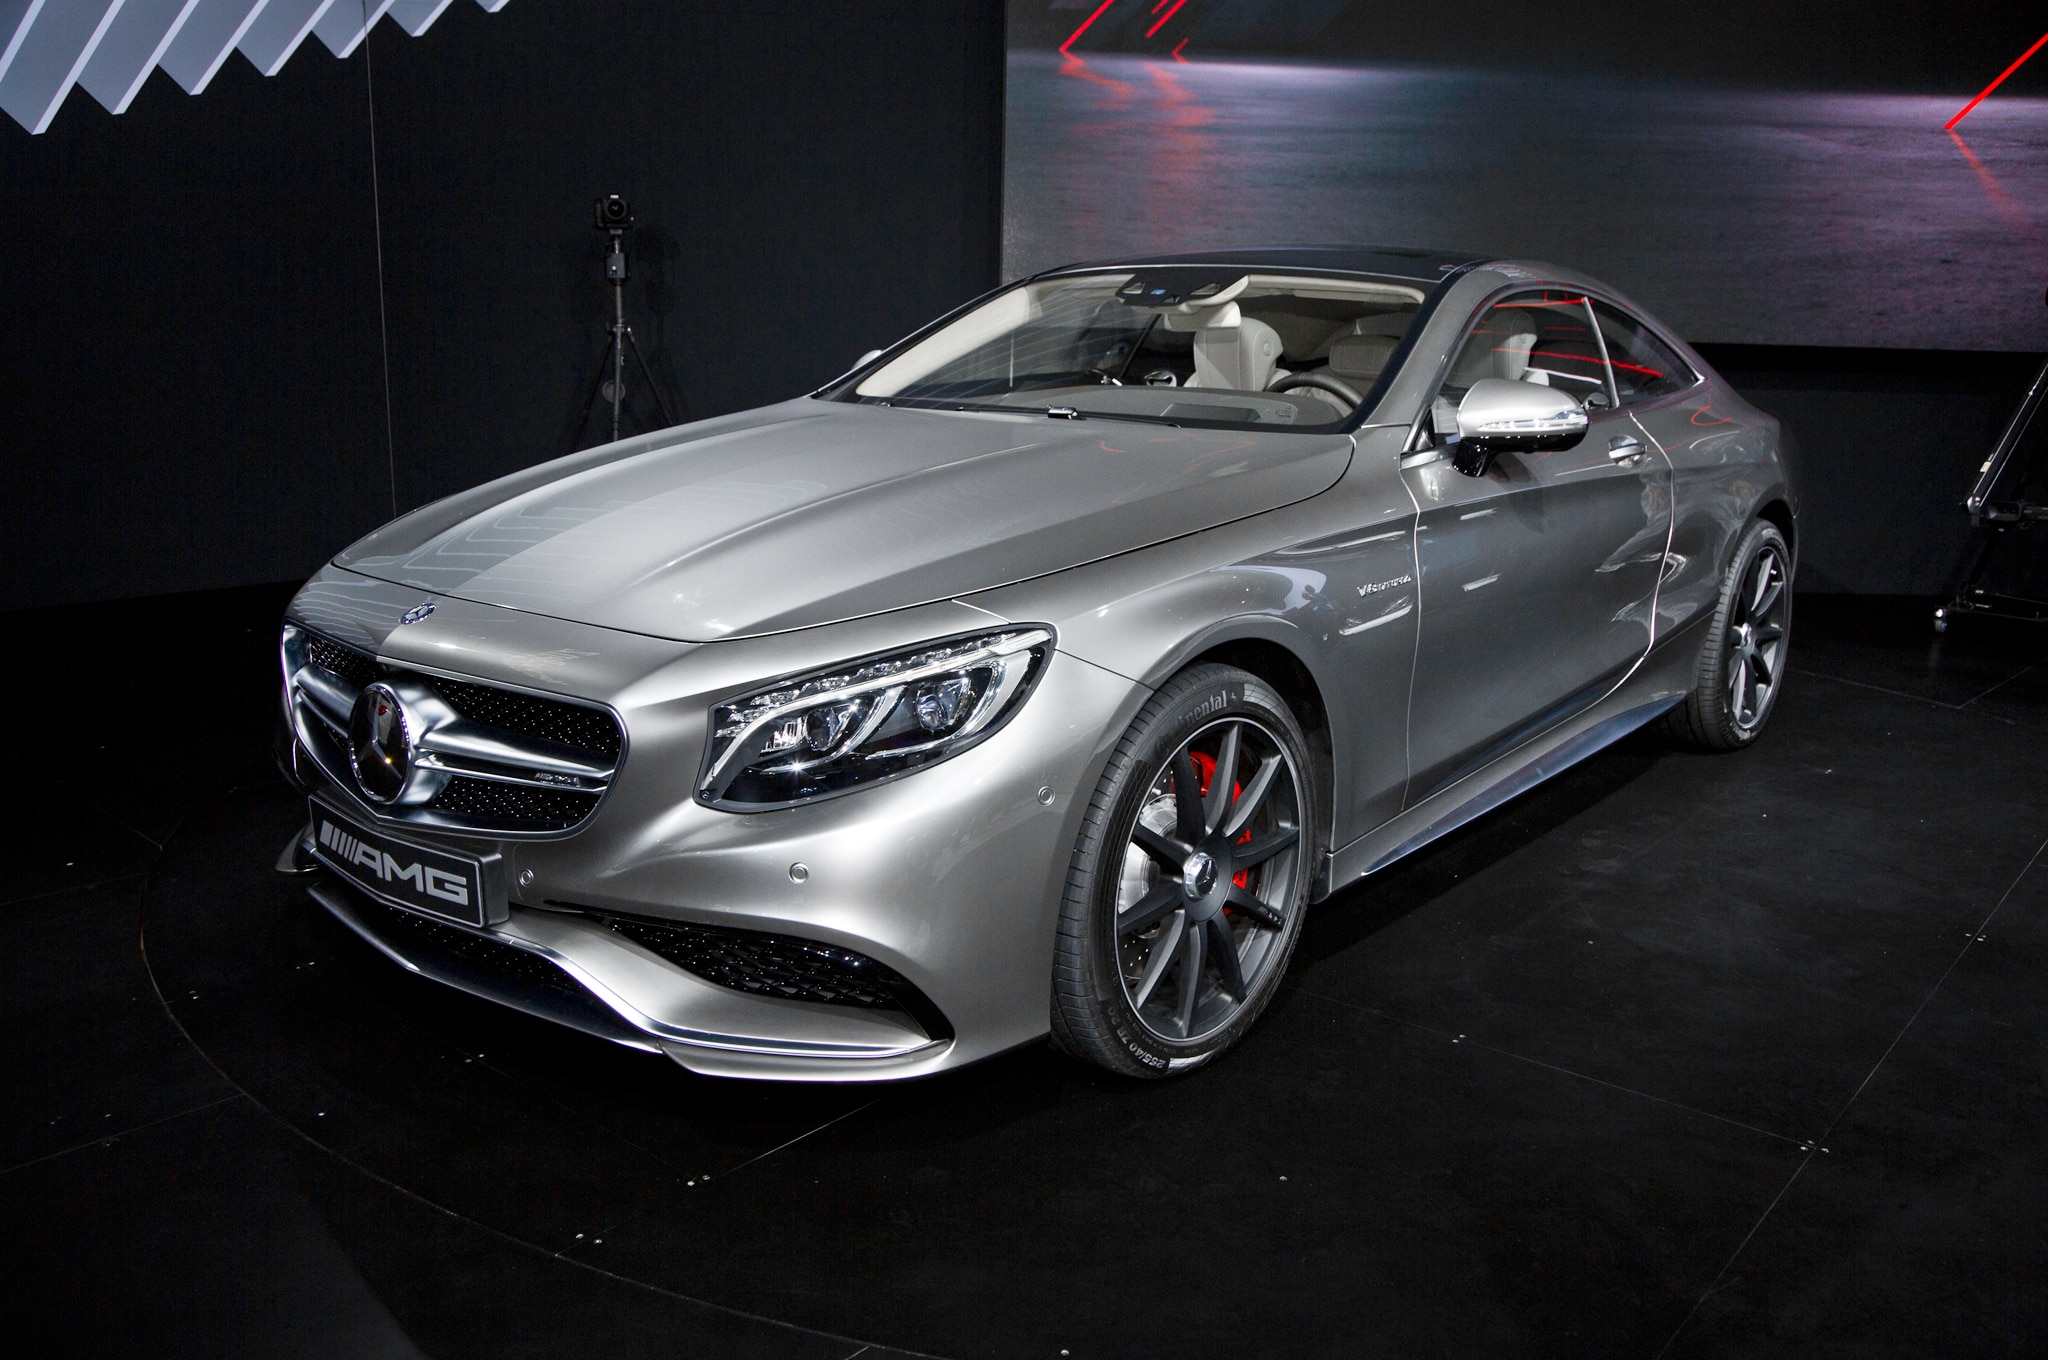 2015 Mercedes Benz S63 AMG 4Matic Coupe Front Three Quarter2